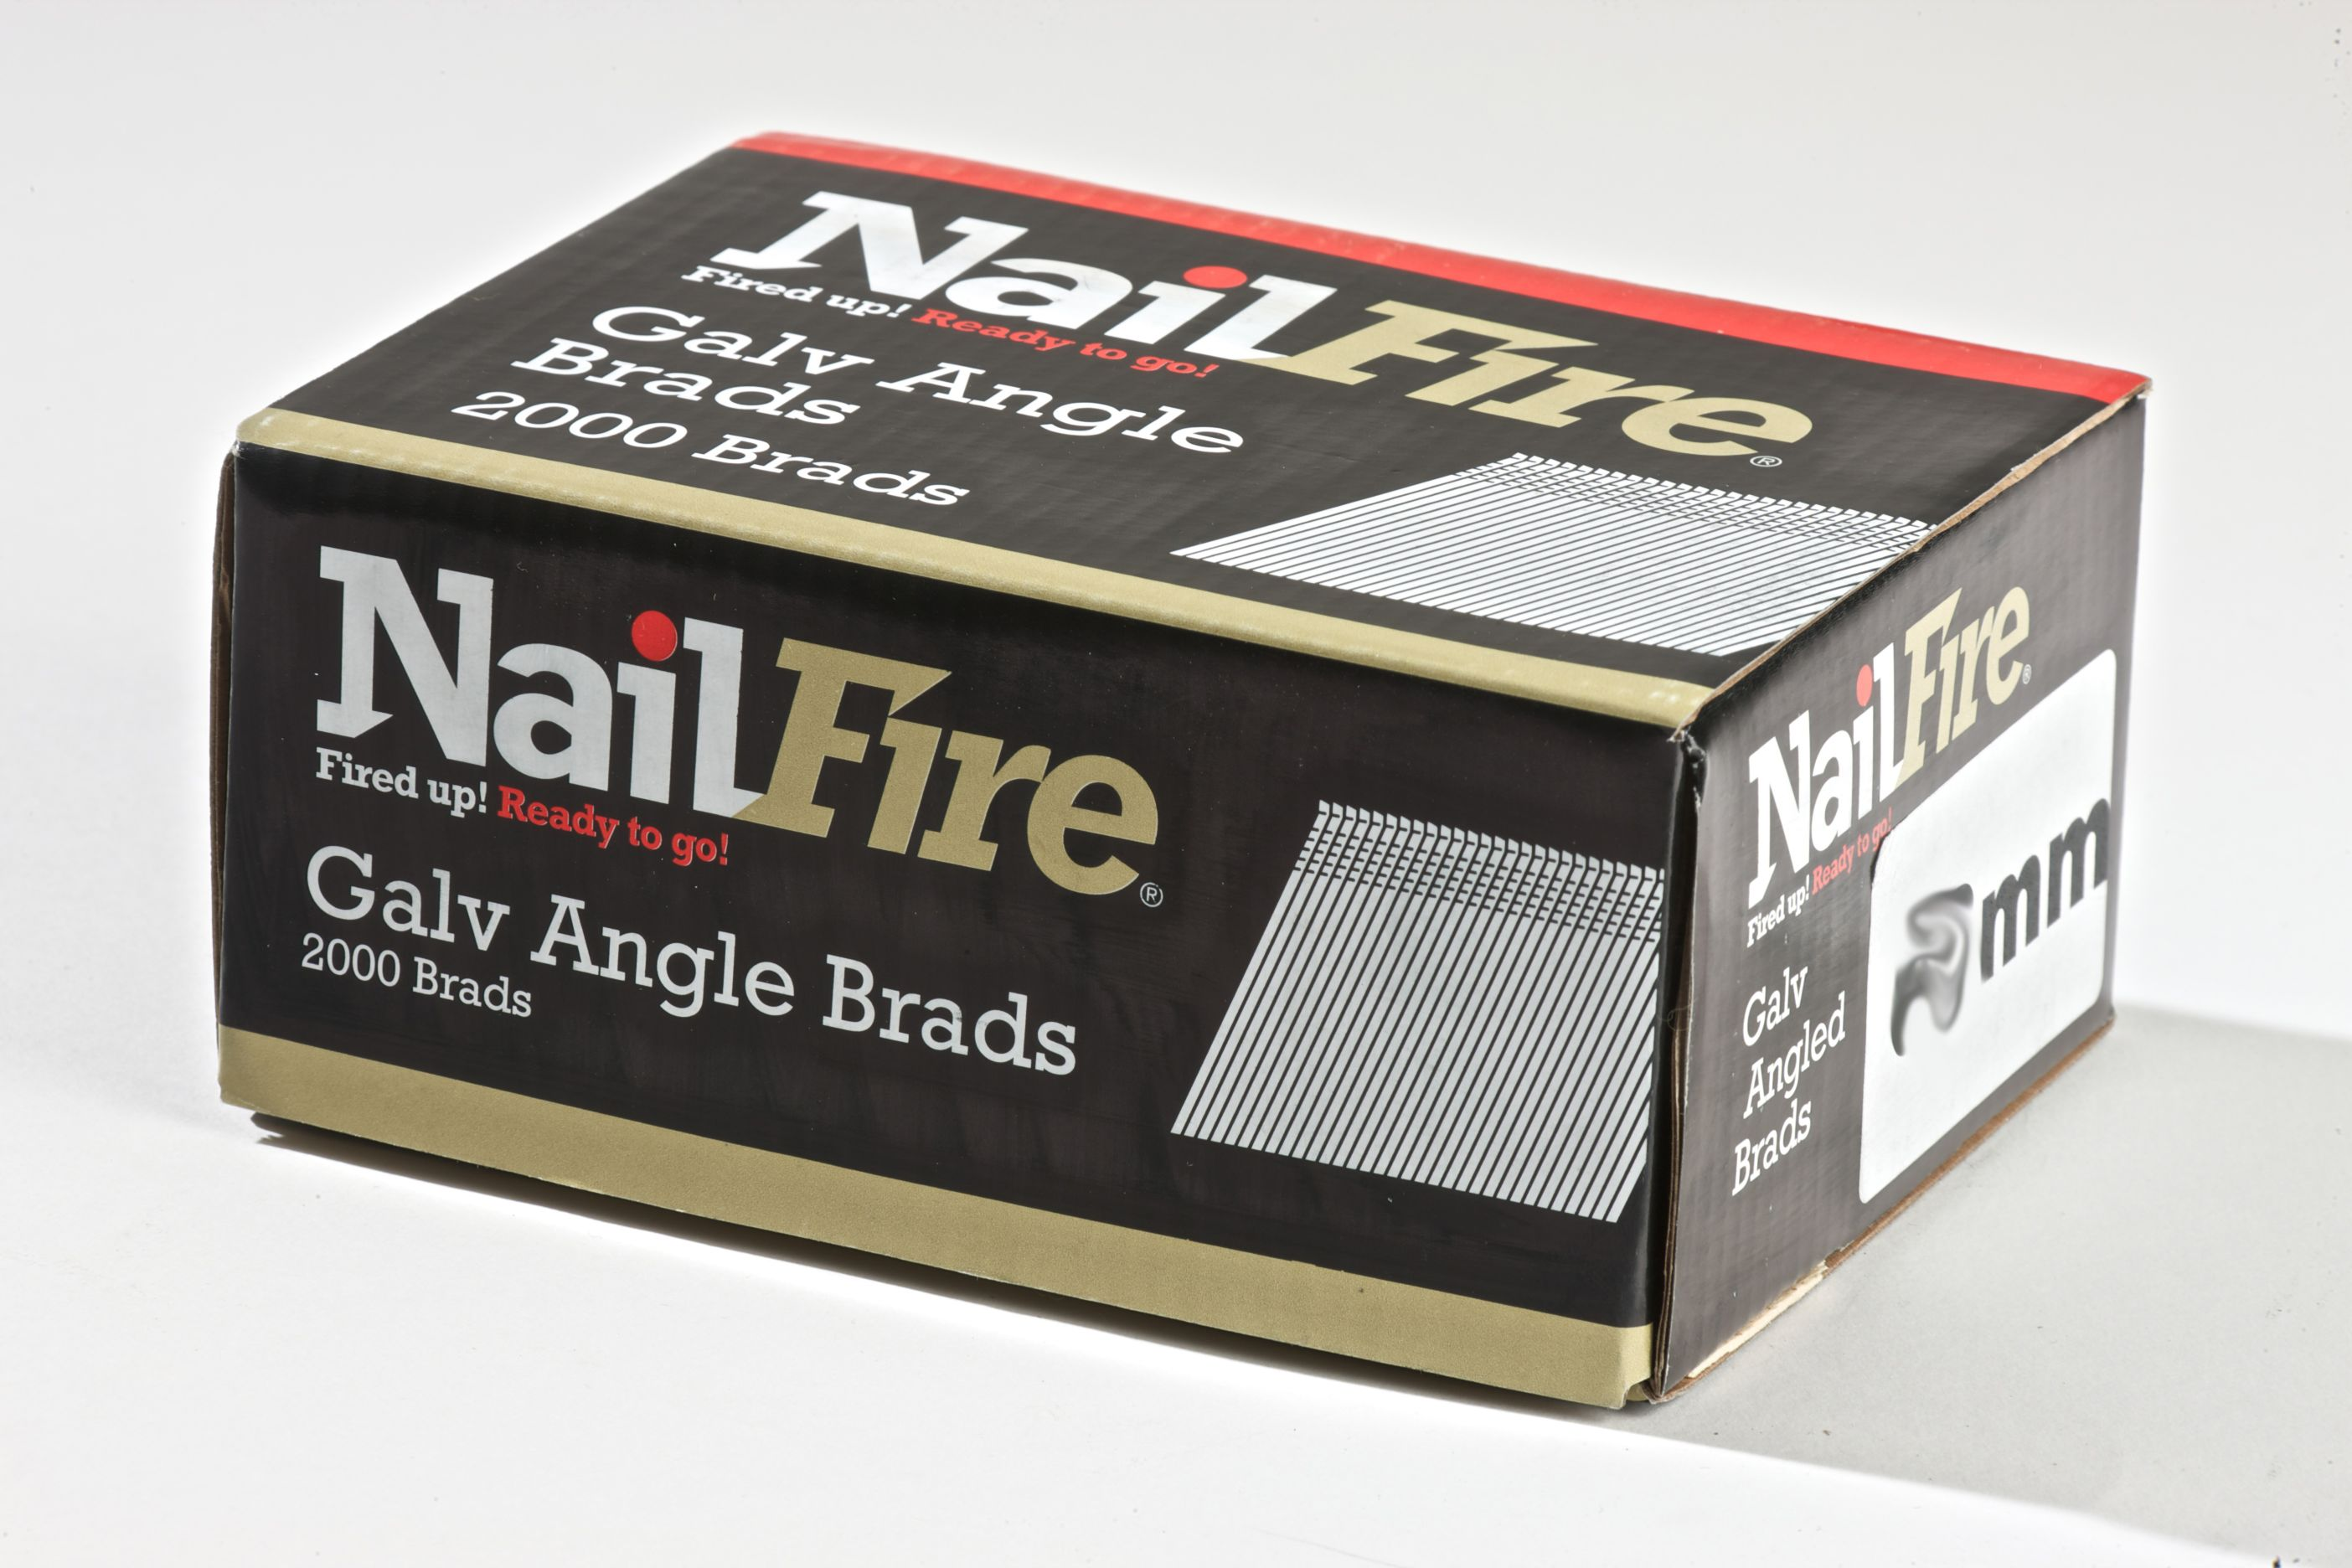 NAILFIRE 2ND FIX ANGLED E-GALV BRAD & FUEL PACK 45MM (TUB OF 2000)